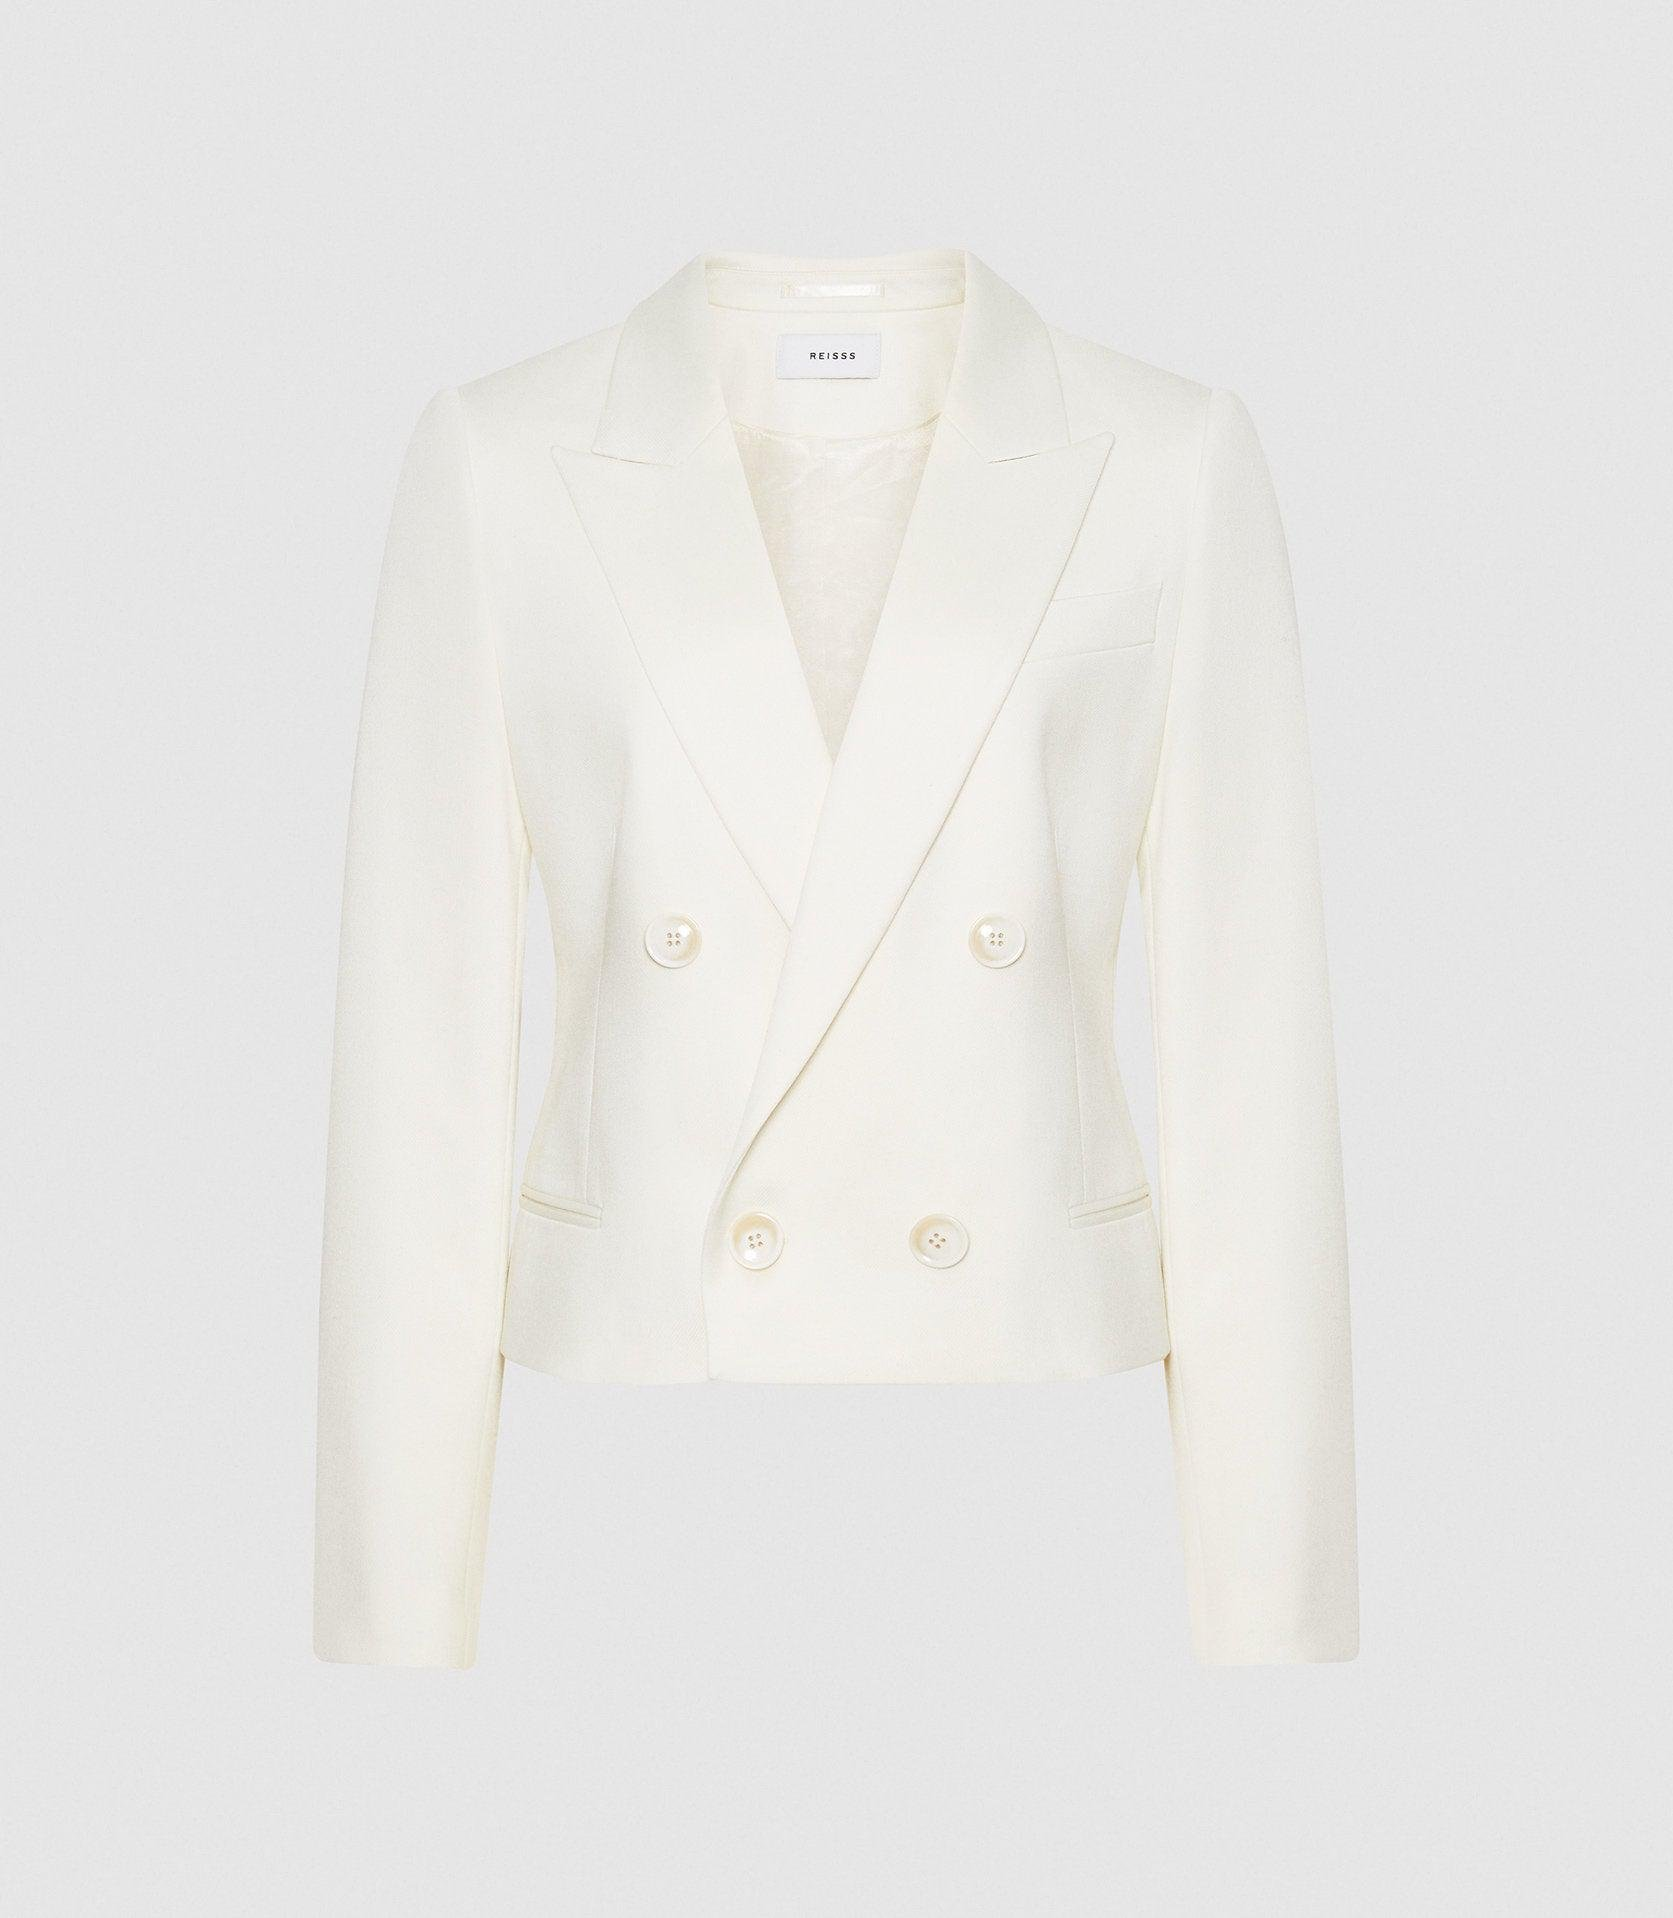 ALEIDA - CROPPED DOUBLE BREASTED BLAZER 4